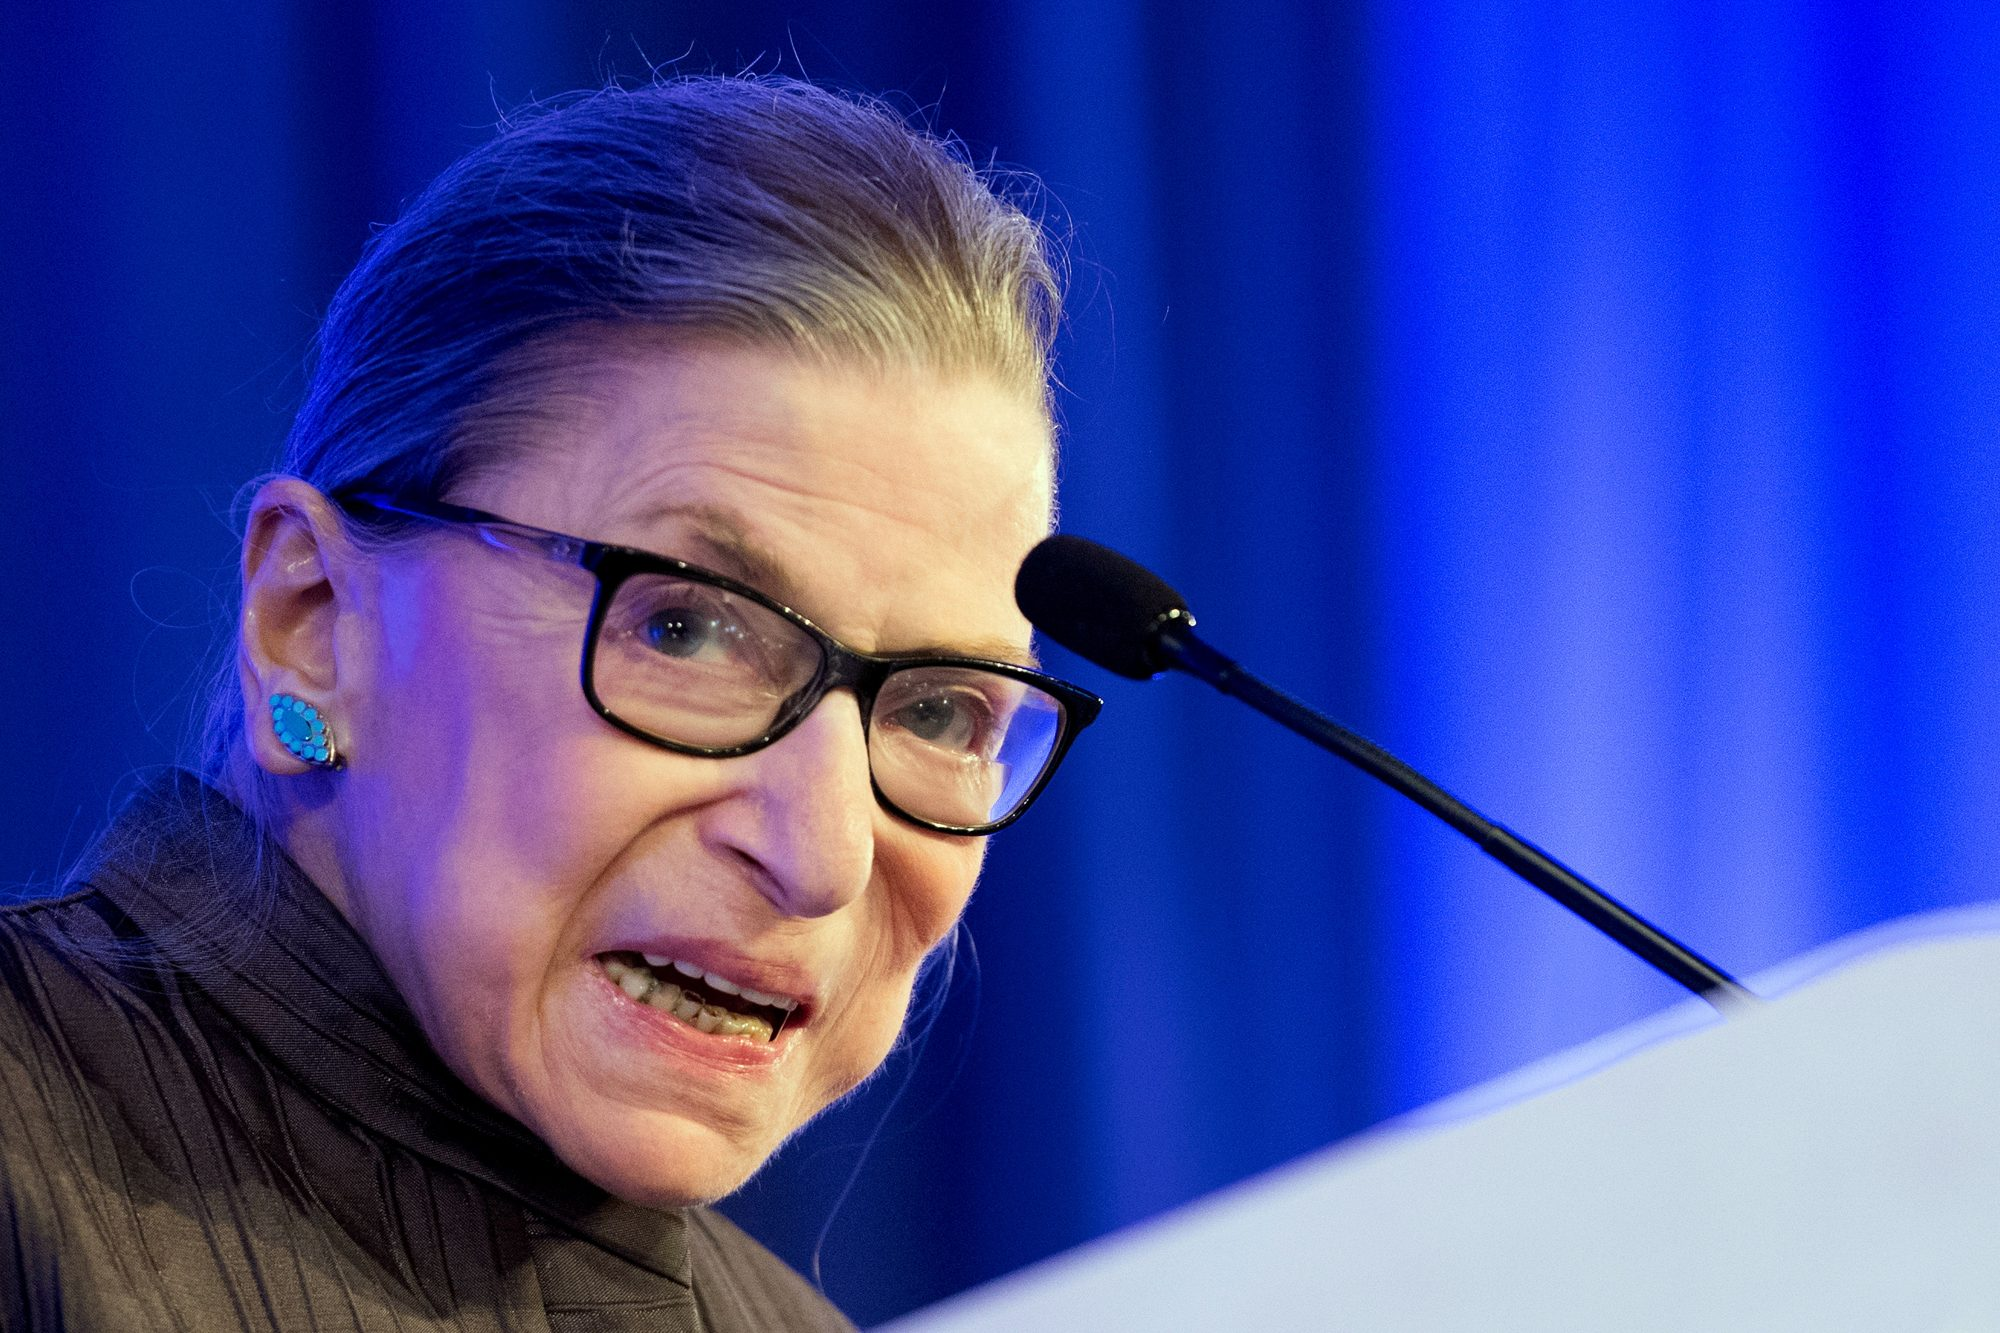 Why Ruth Bader Ginsburg Is Still Recovering from Lung Surgery and Missing Supreme Court Arguments Today